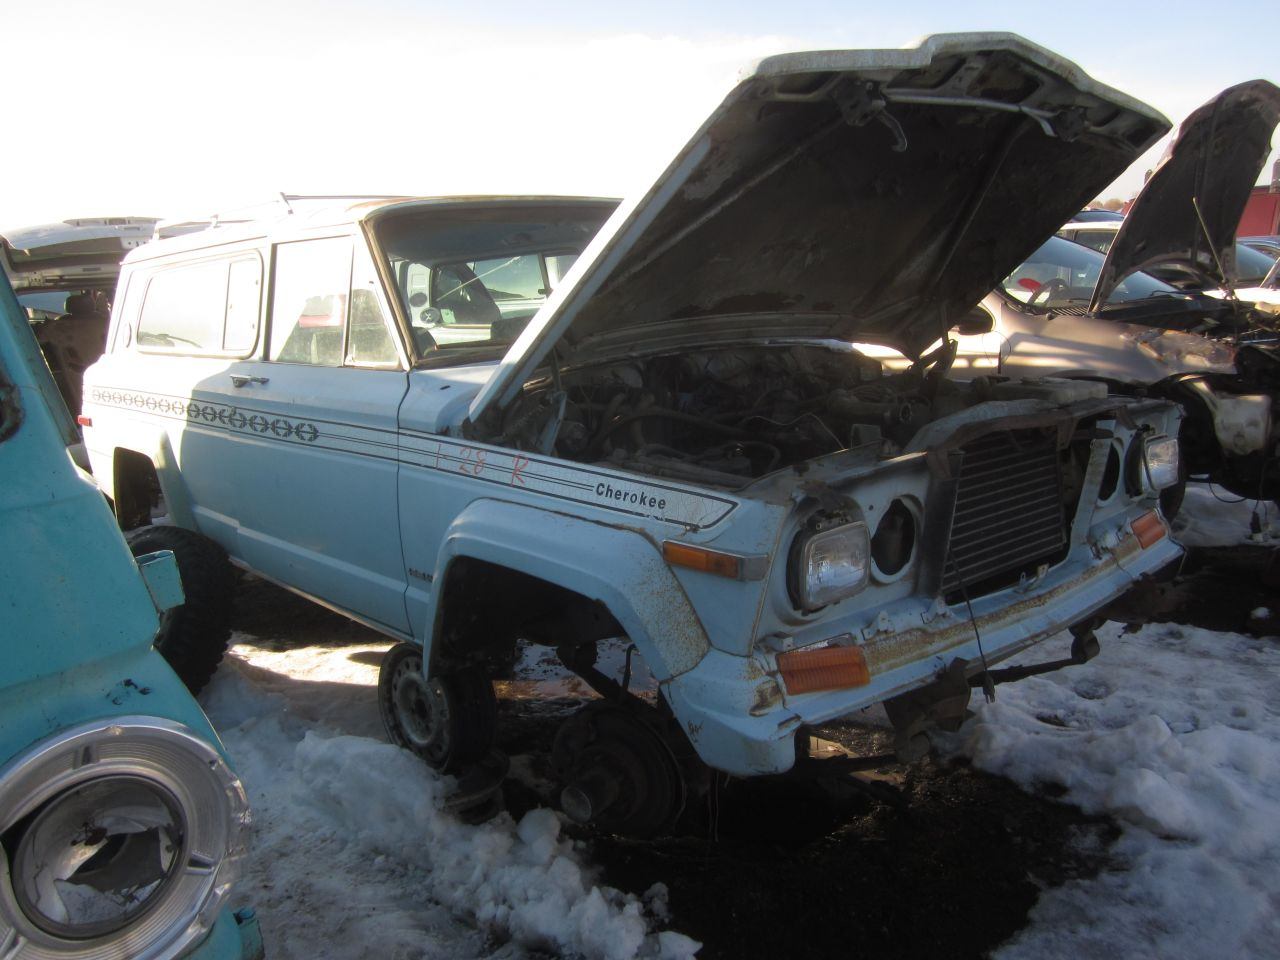 01 1979 jeep cherokee down on the junkyard pictures courtesy of phillip murilee